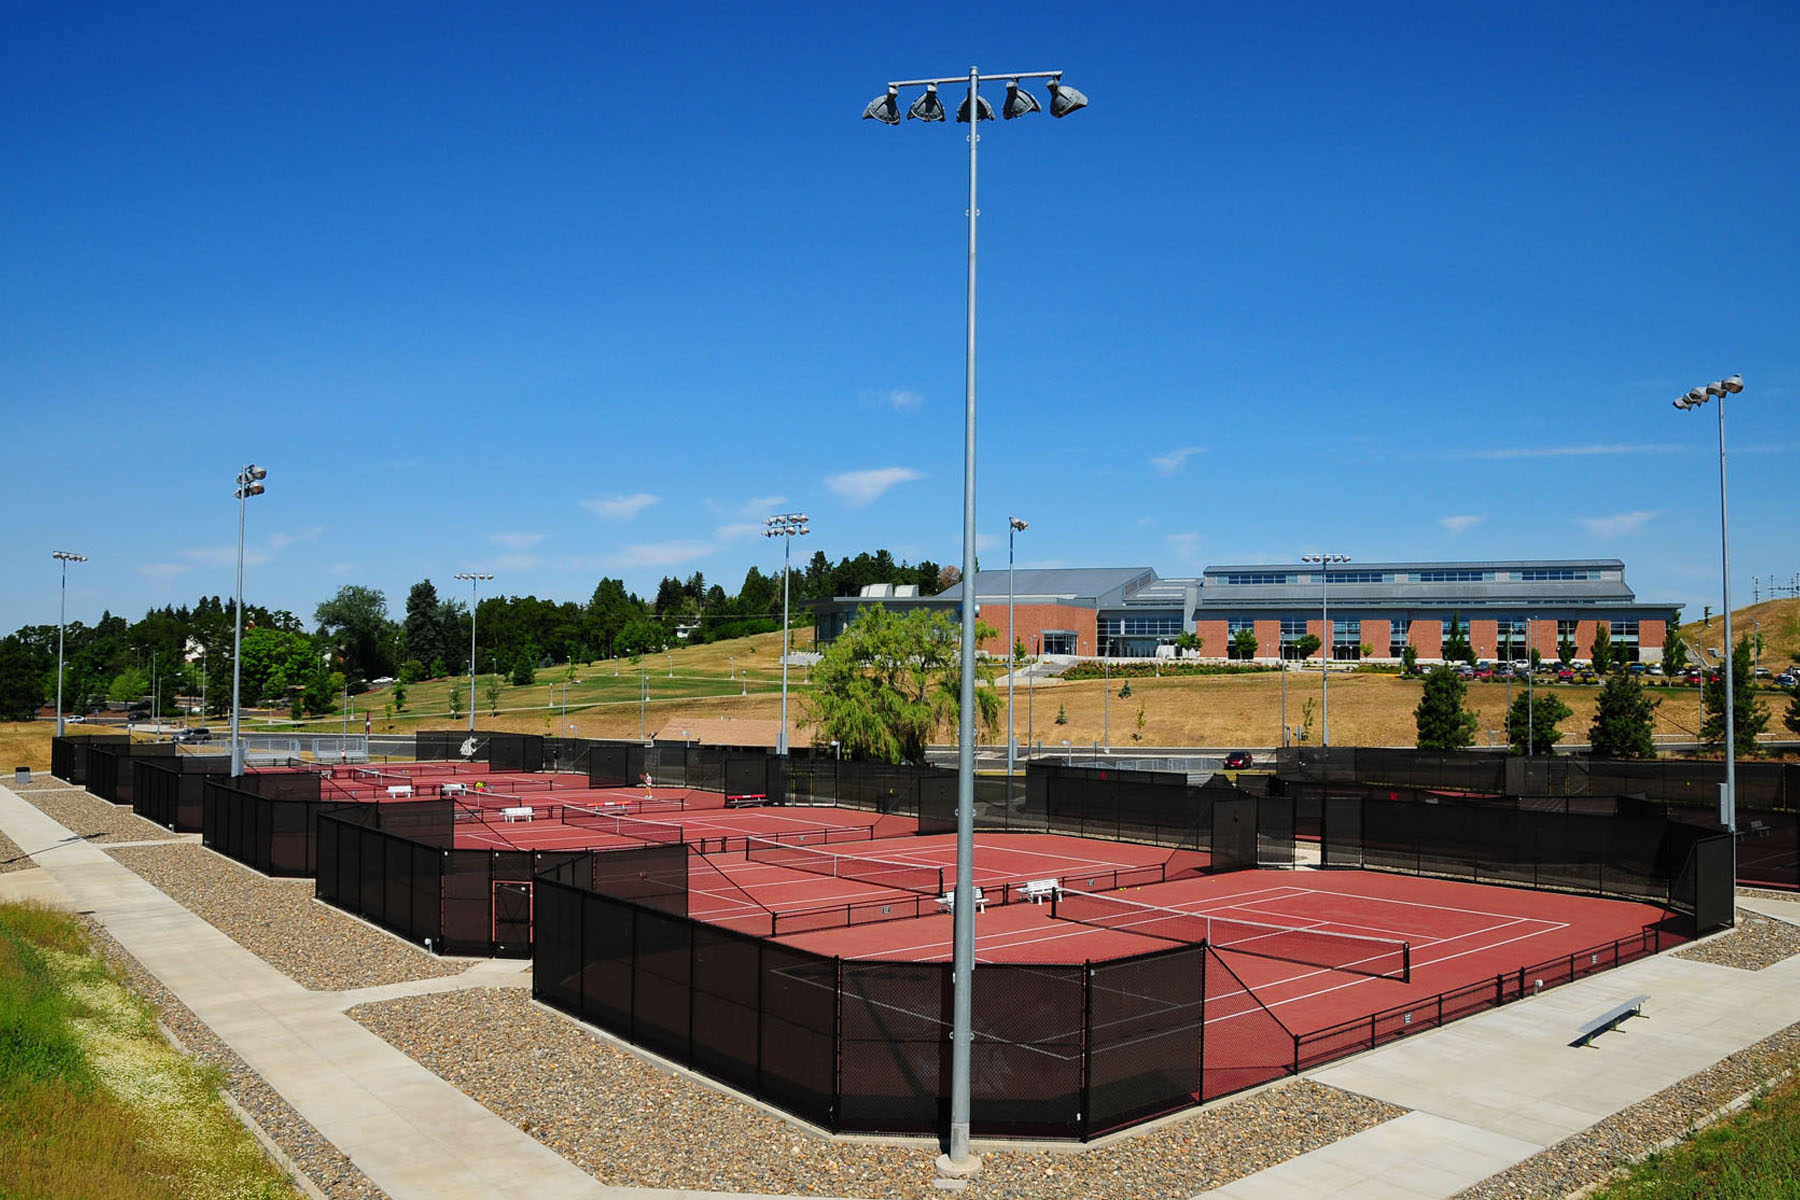 Washington State University <br/> NCAA/PAC 12 Conference Tournament <BR/> Outdoor Tennis Courts